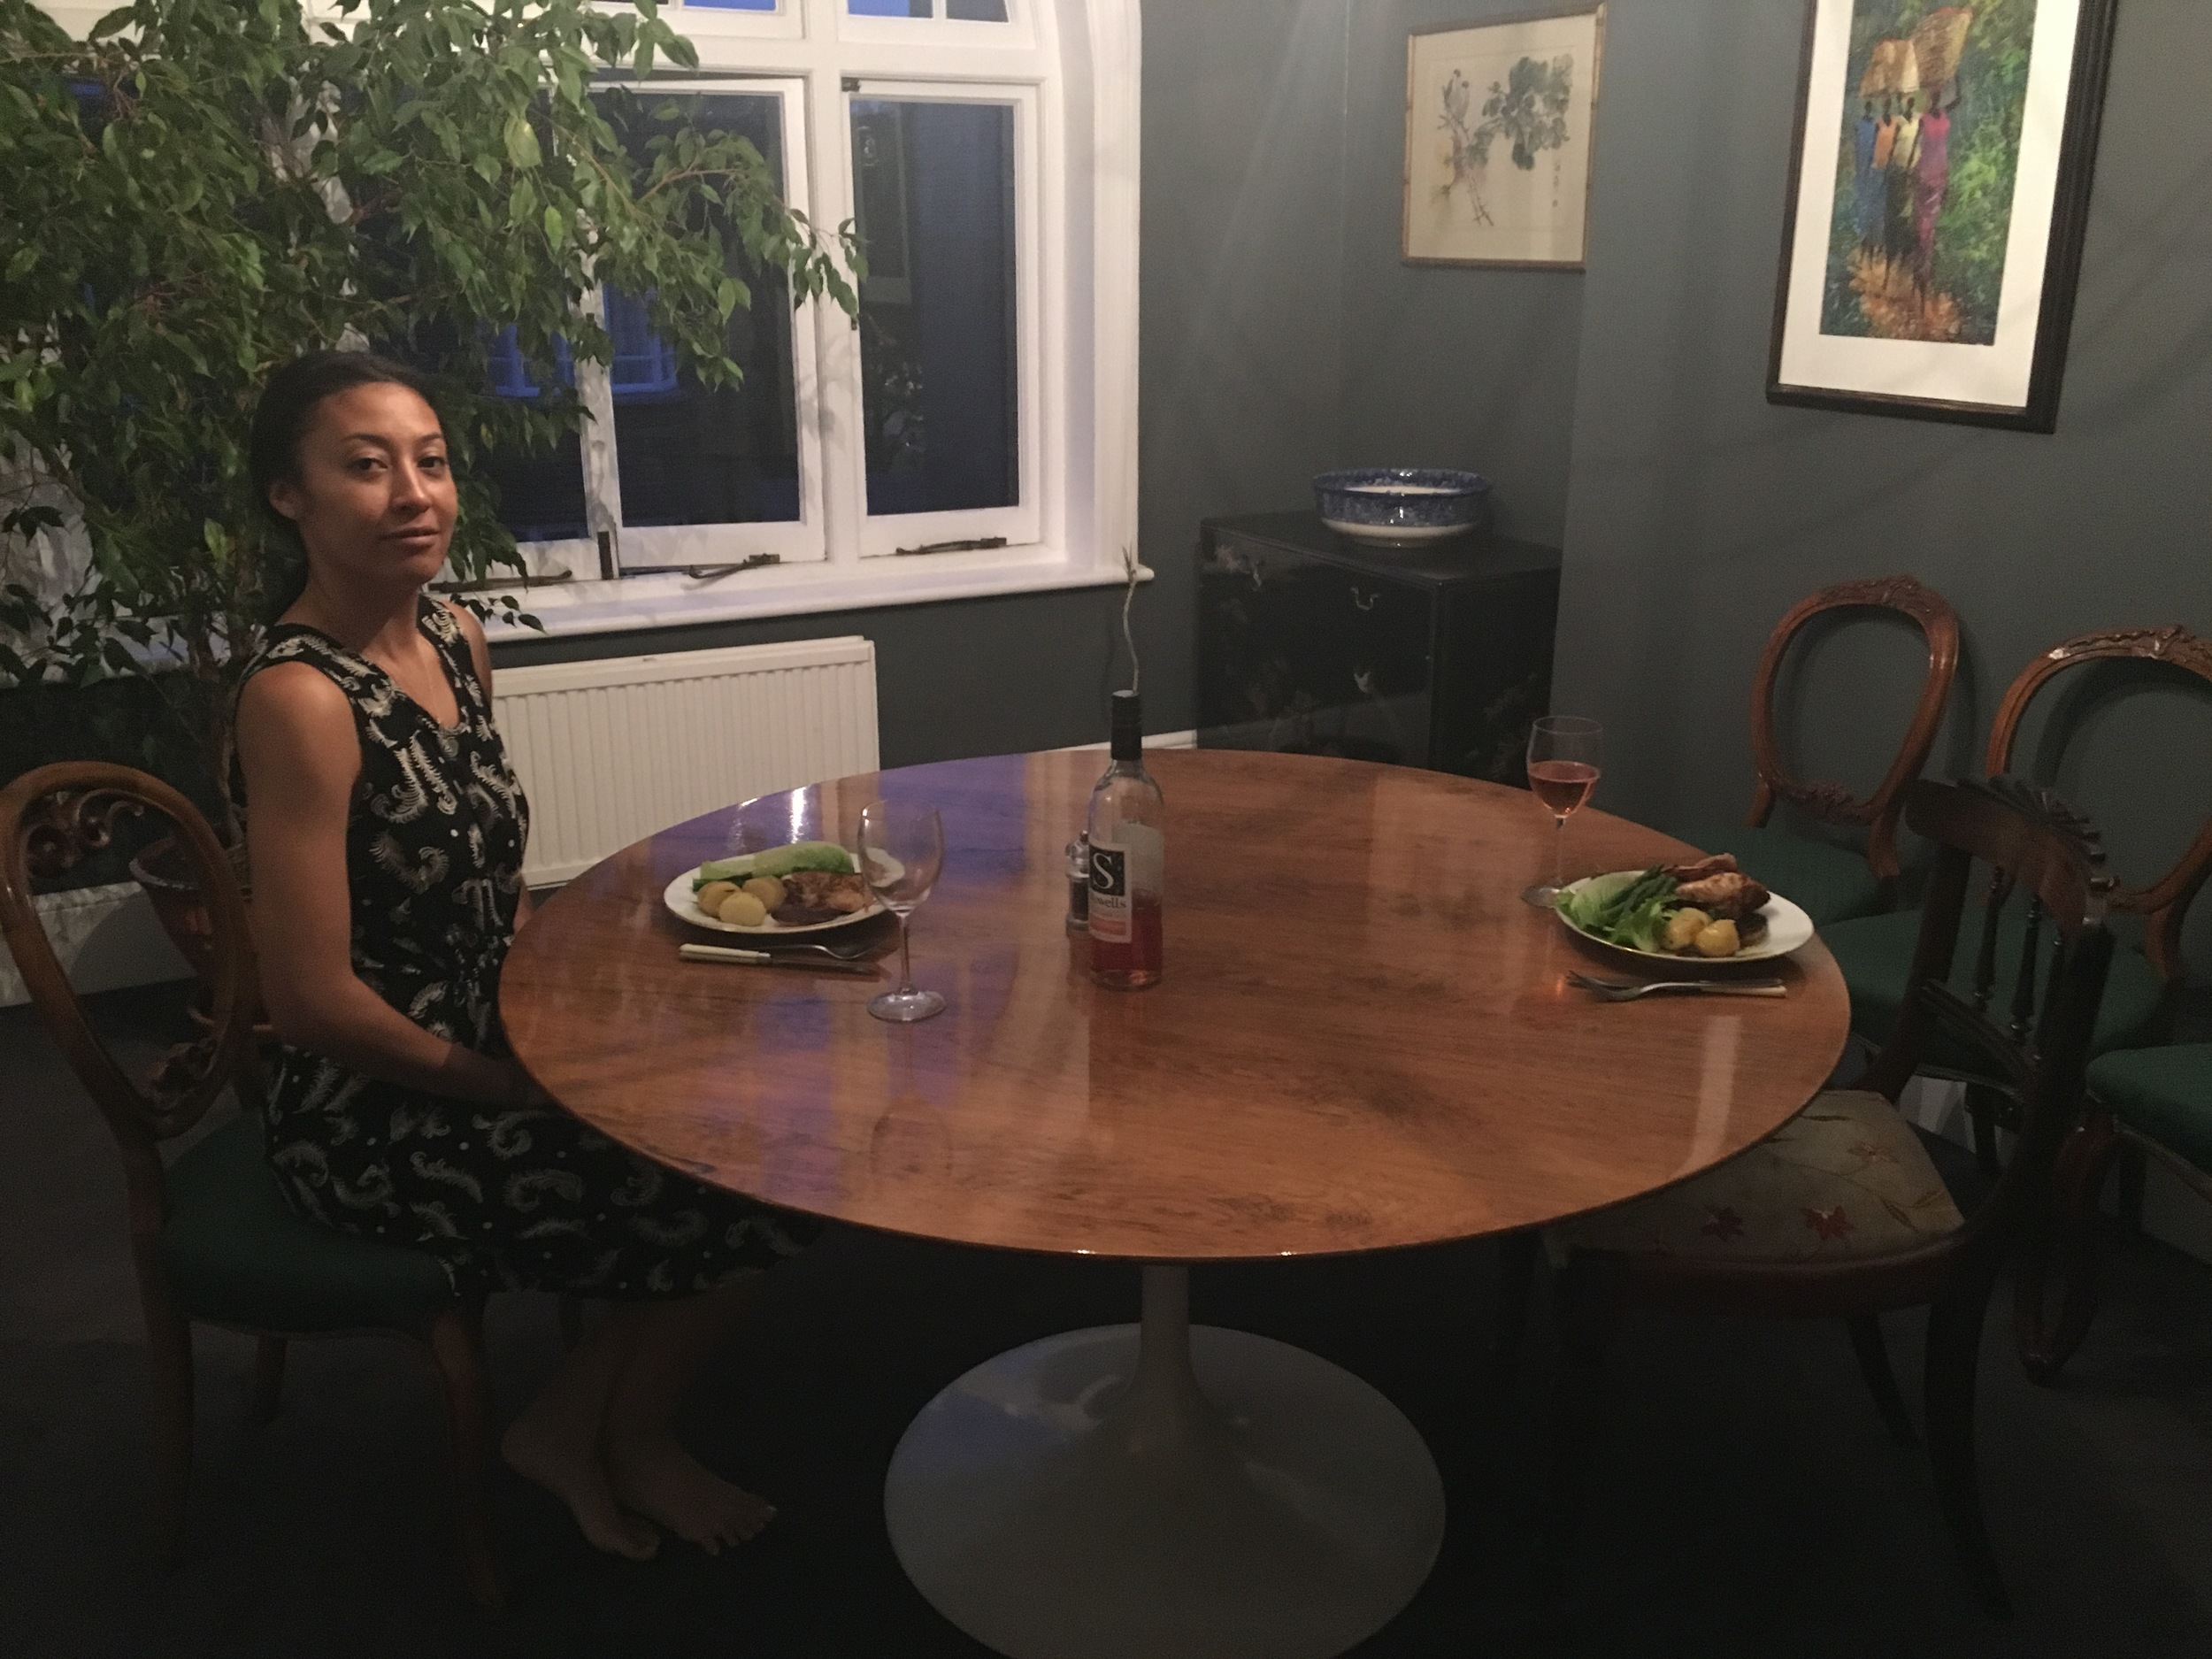 Dinner Party for 1 + Invisible Friend